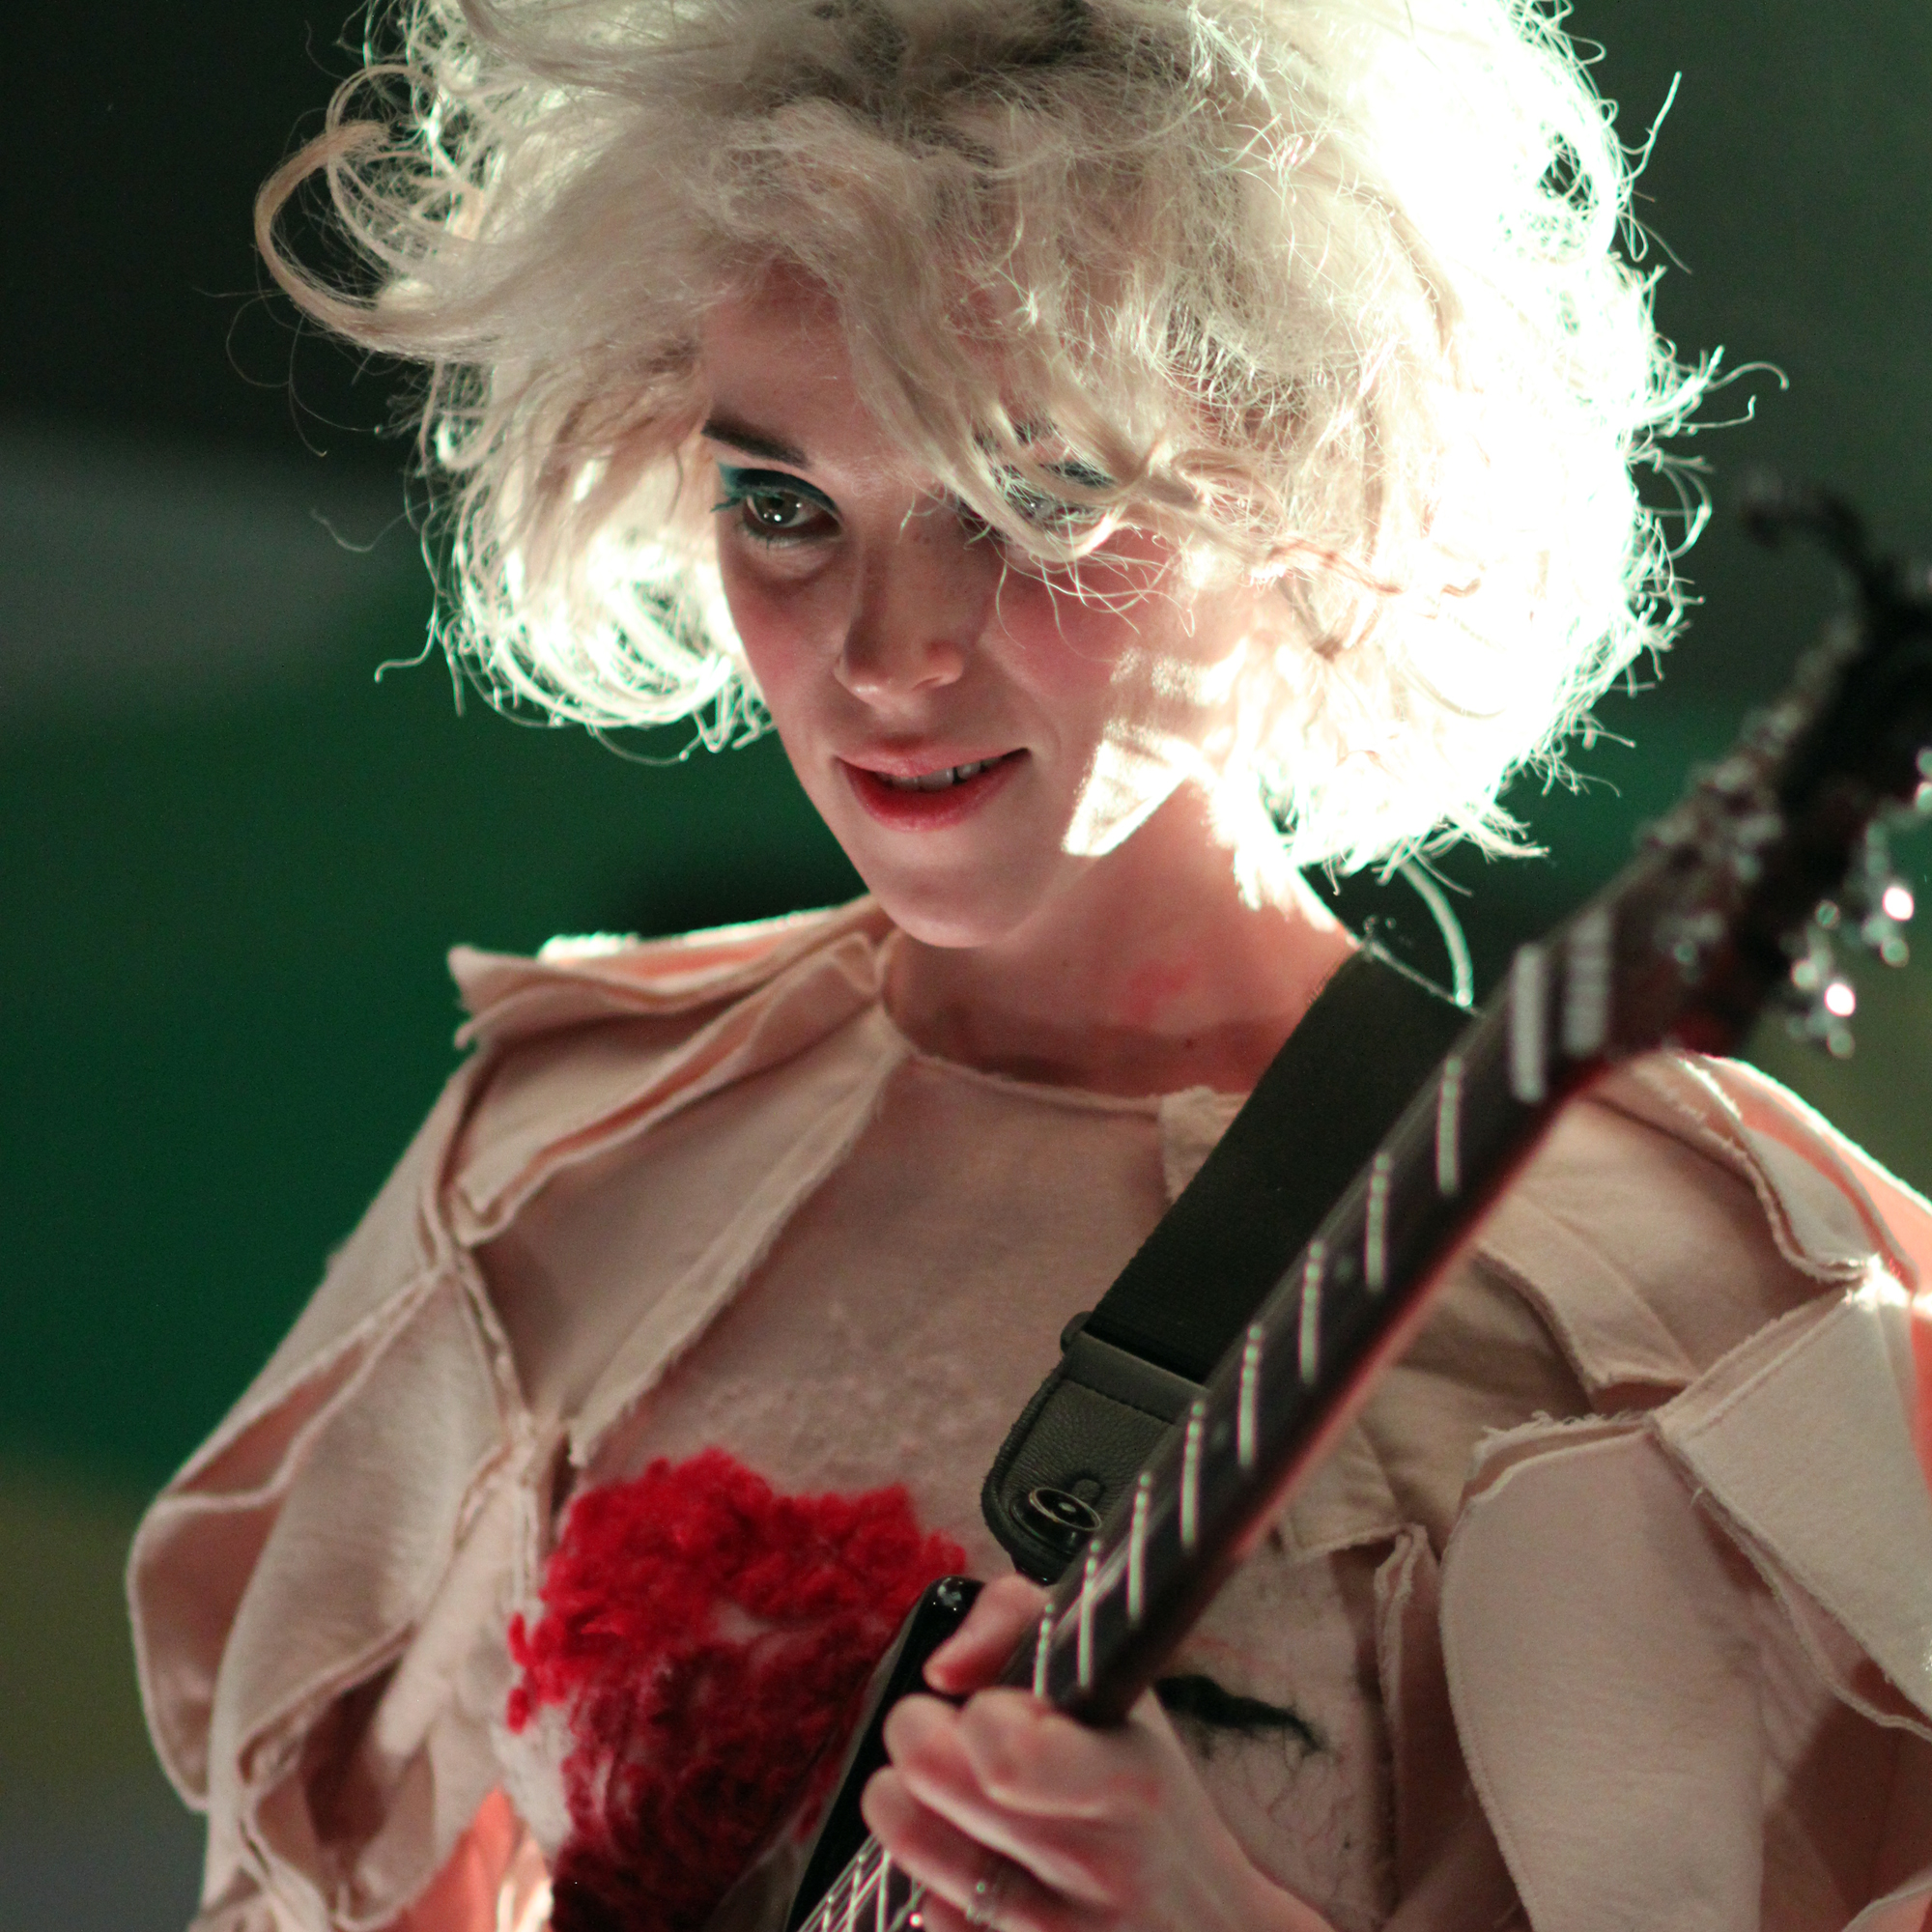 st vincent heather kaplan Top 10 Music Festivals in North America: Winter 2015 Power Rankings